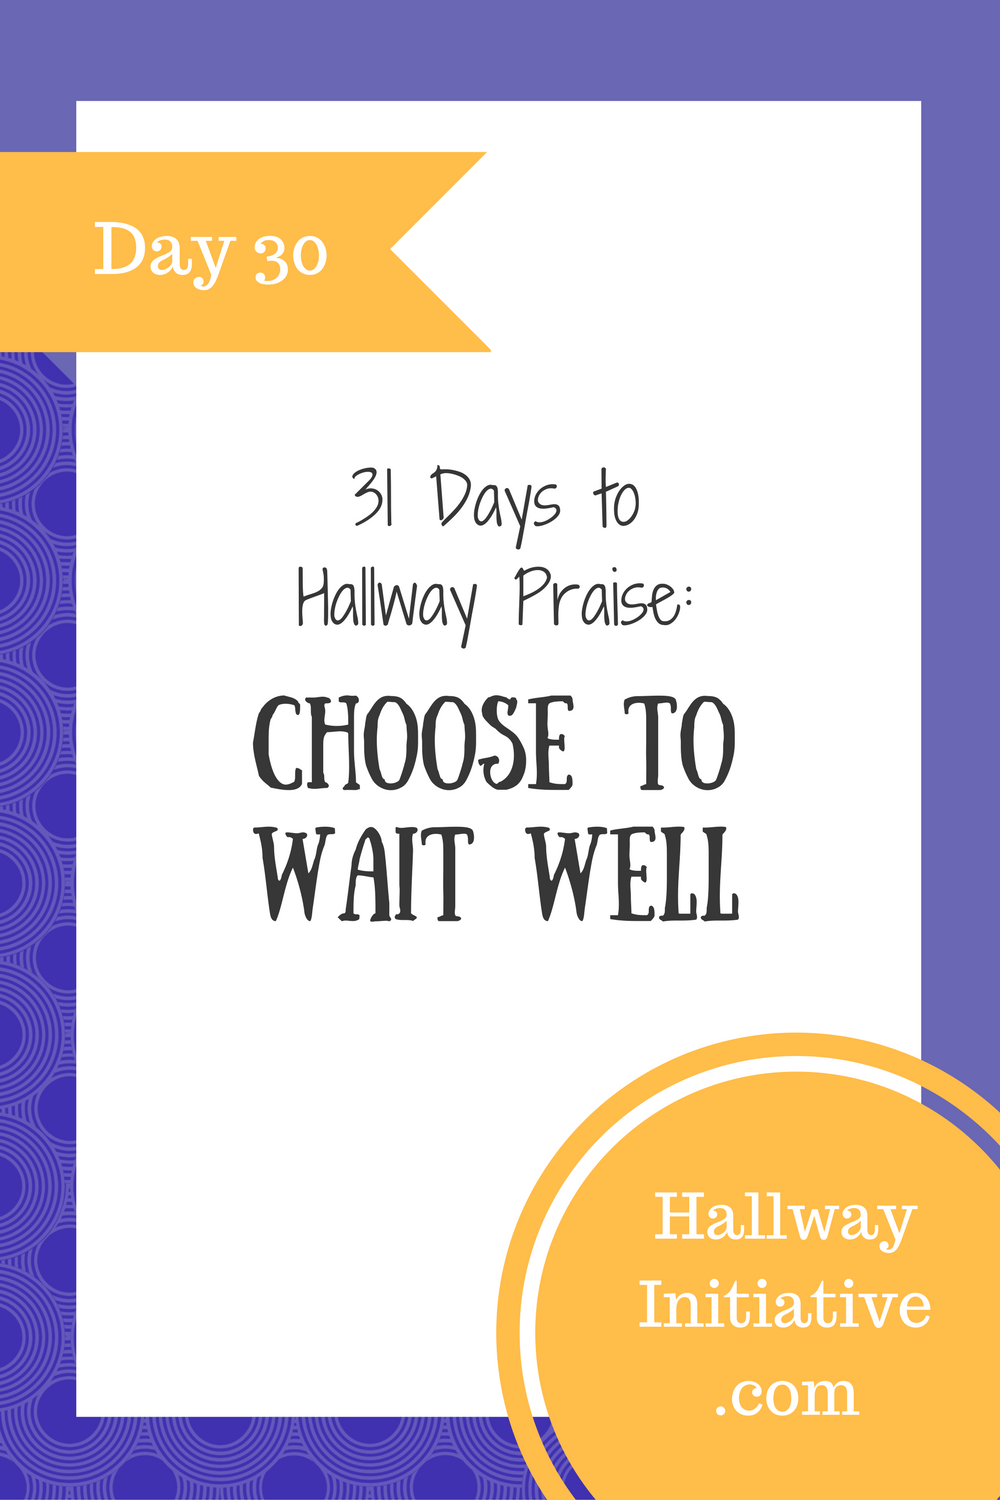 Day 30: choose to wait well